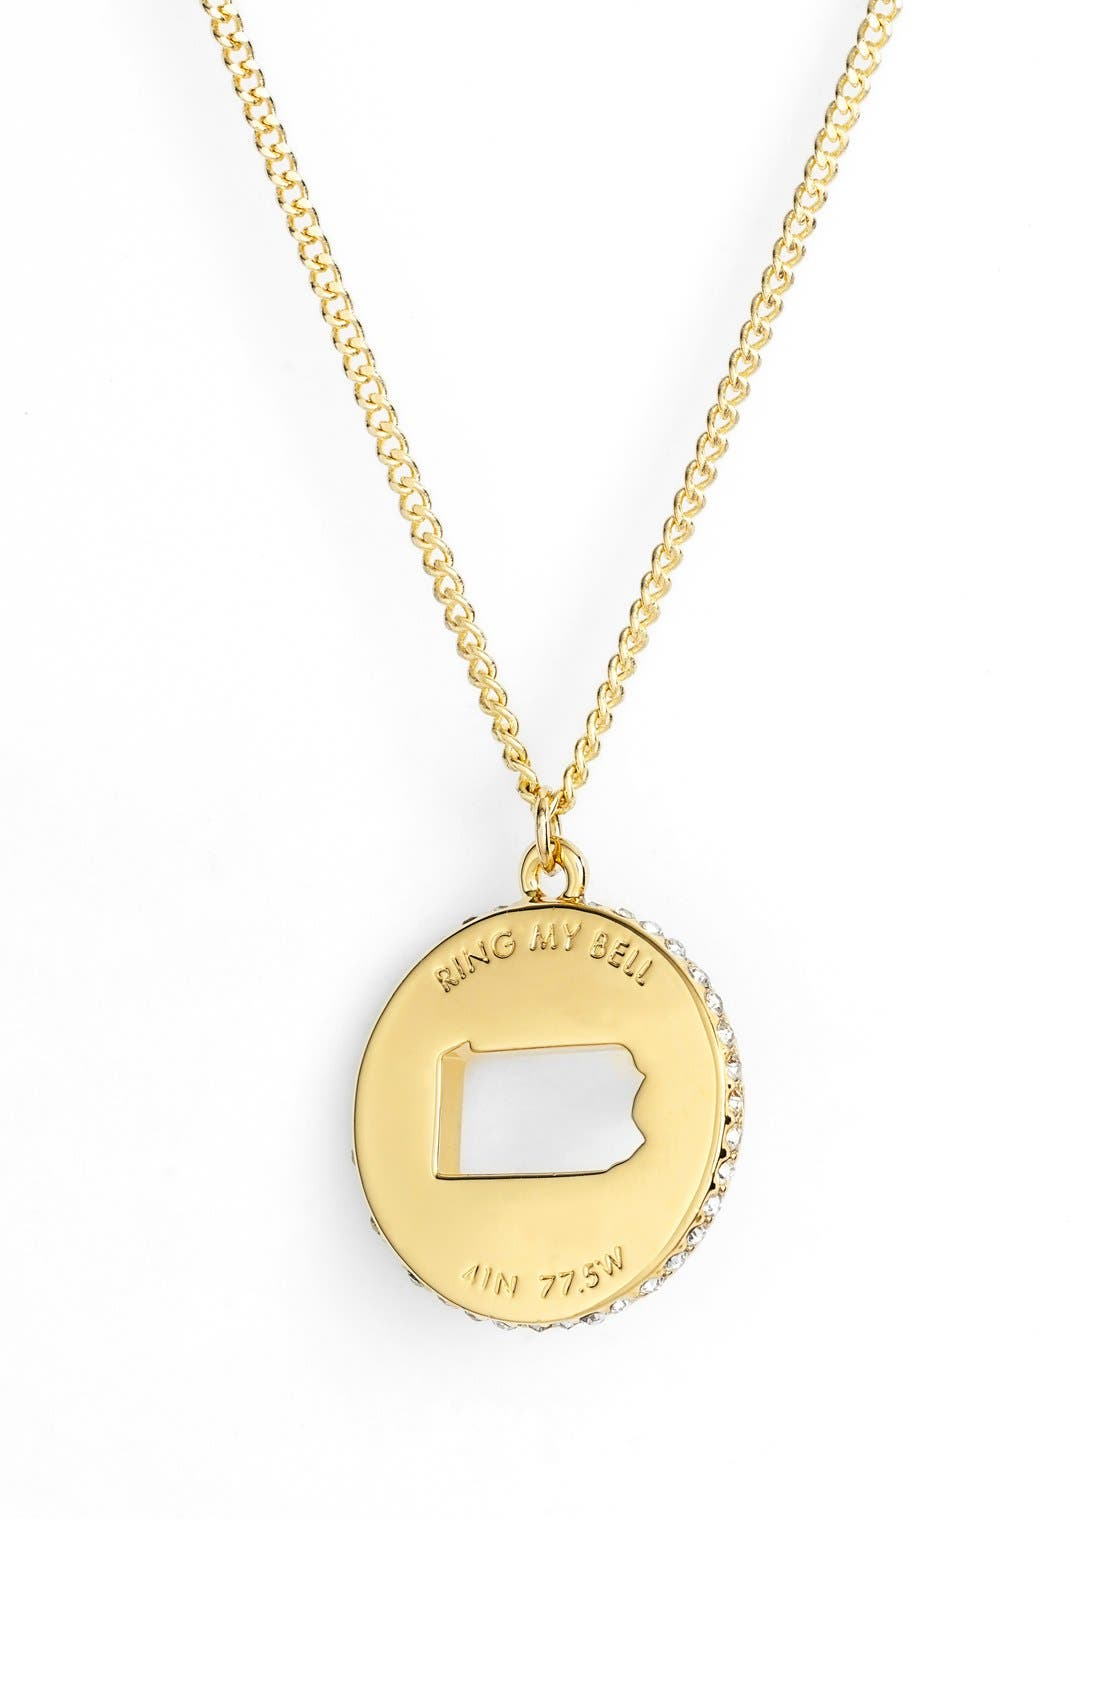 KATE SPADE NEW YORK 'state of mind' pendant